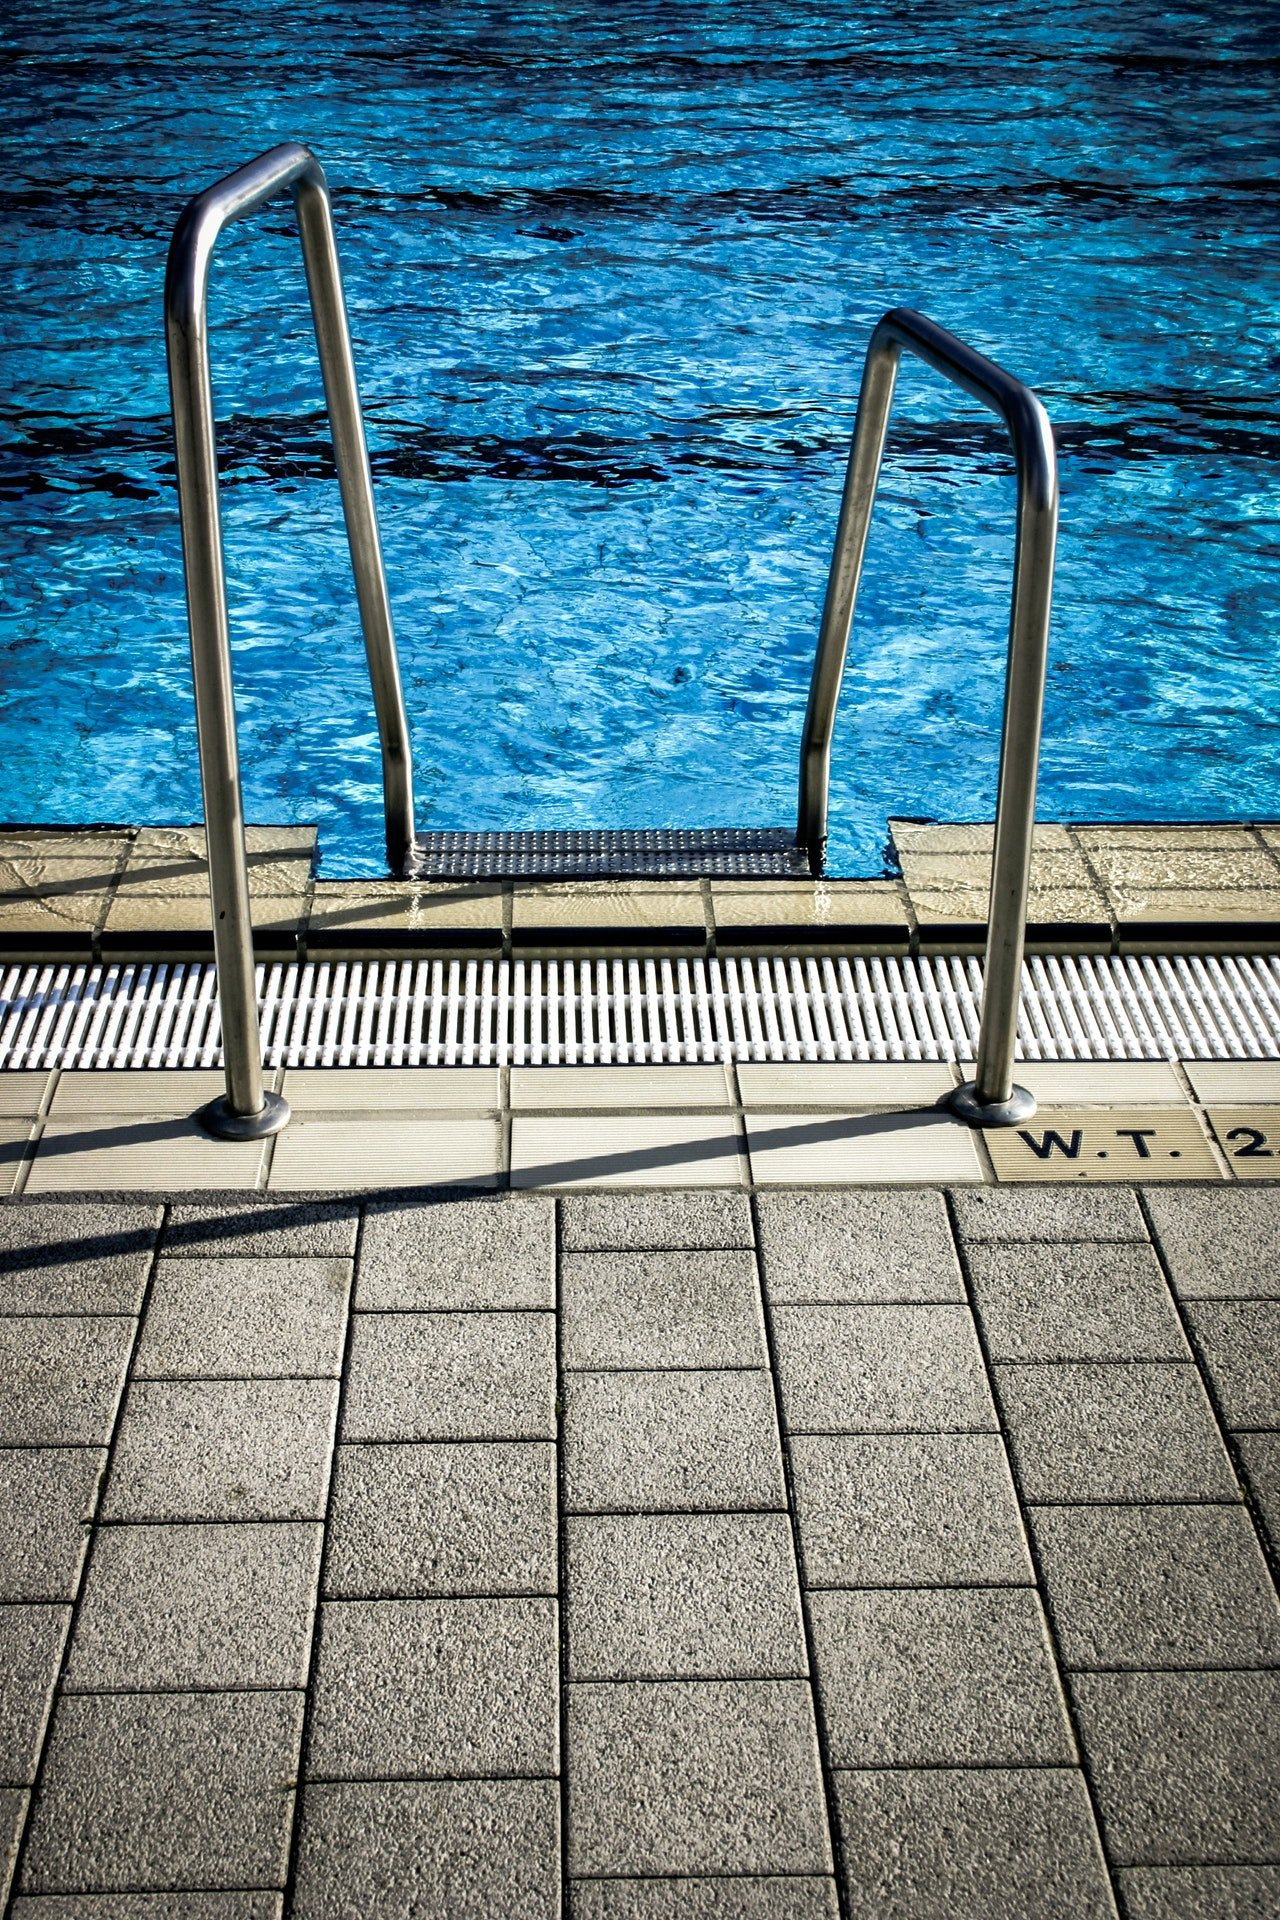 Photo of a swimming pool | Photo: Pexels